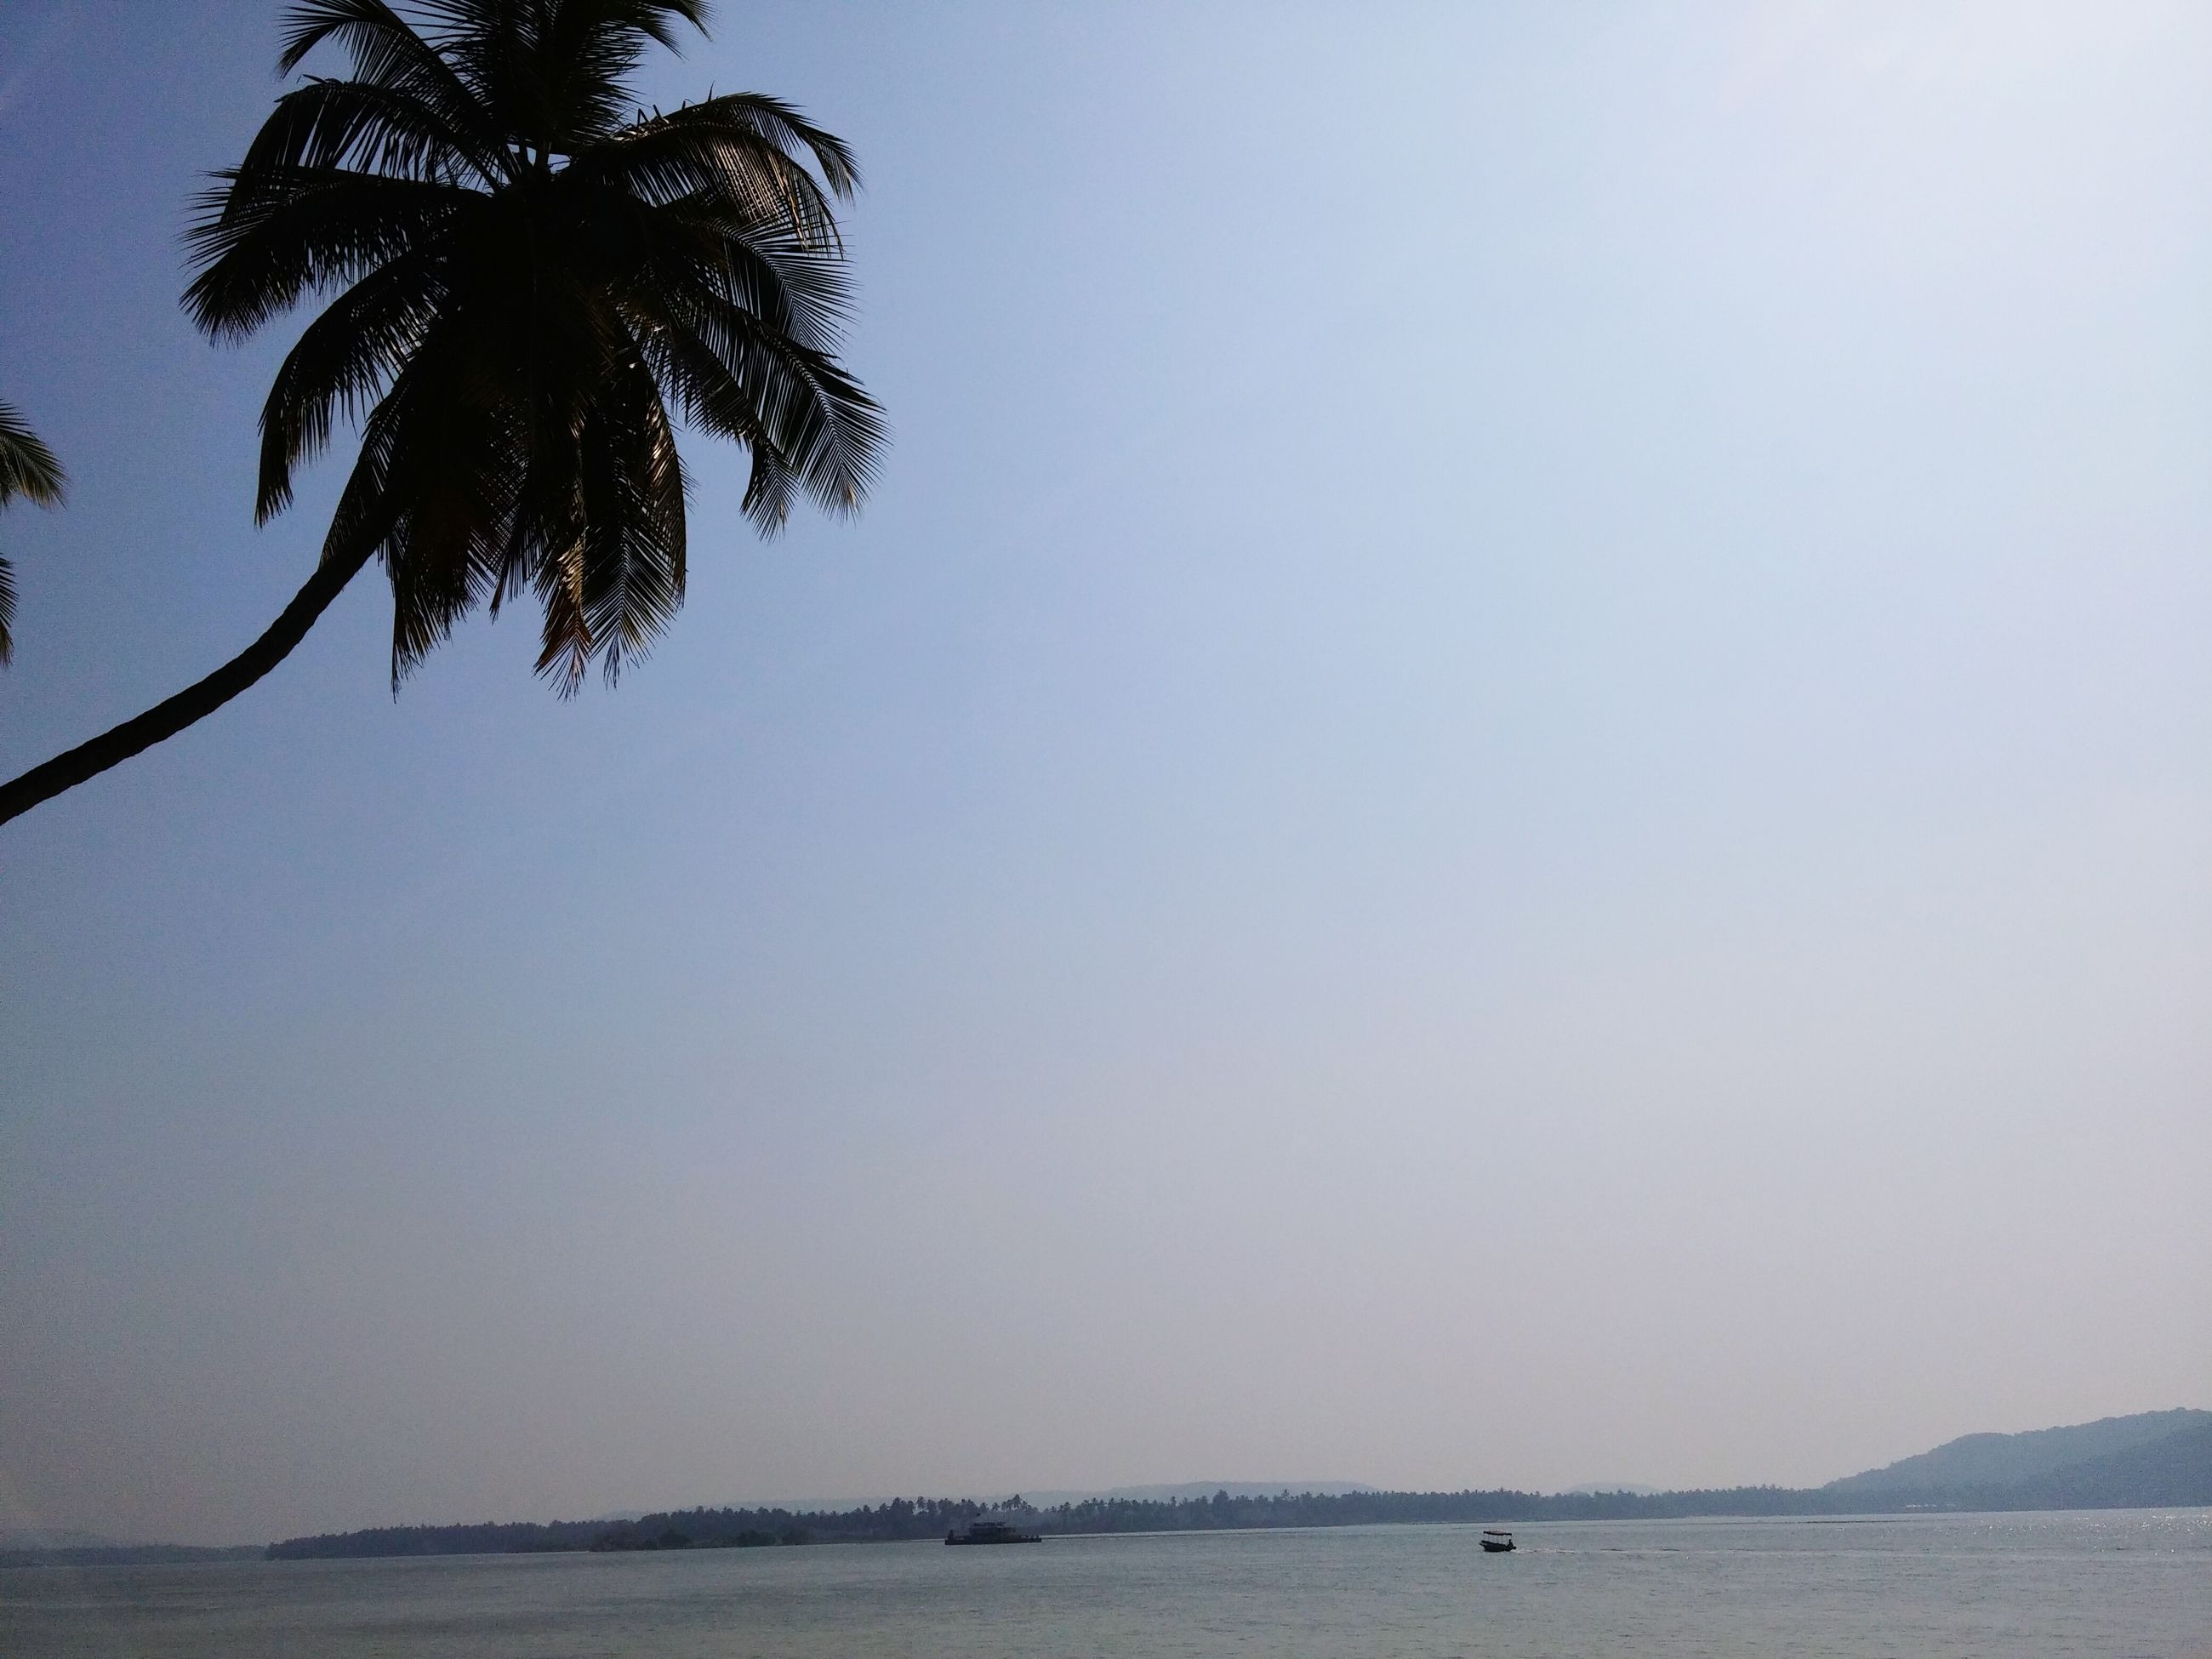 water, clear sky, tranquility, tranquil scene, sea, tree, scenics, beauty in nature, nature, palm tree, sky, copy space, horizon over water, beach, growth, idyllic, waterfront, no people, outdoors, silhouette